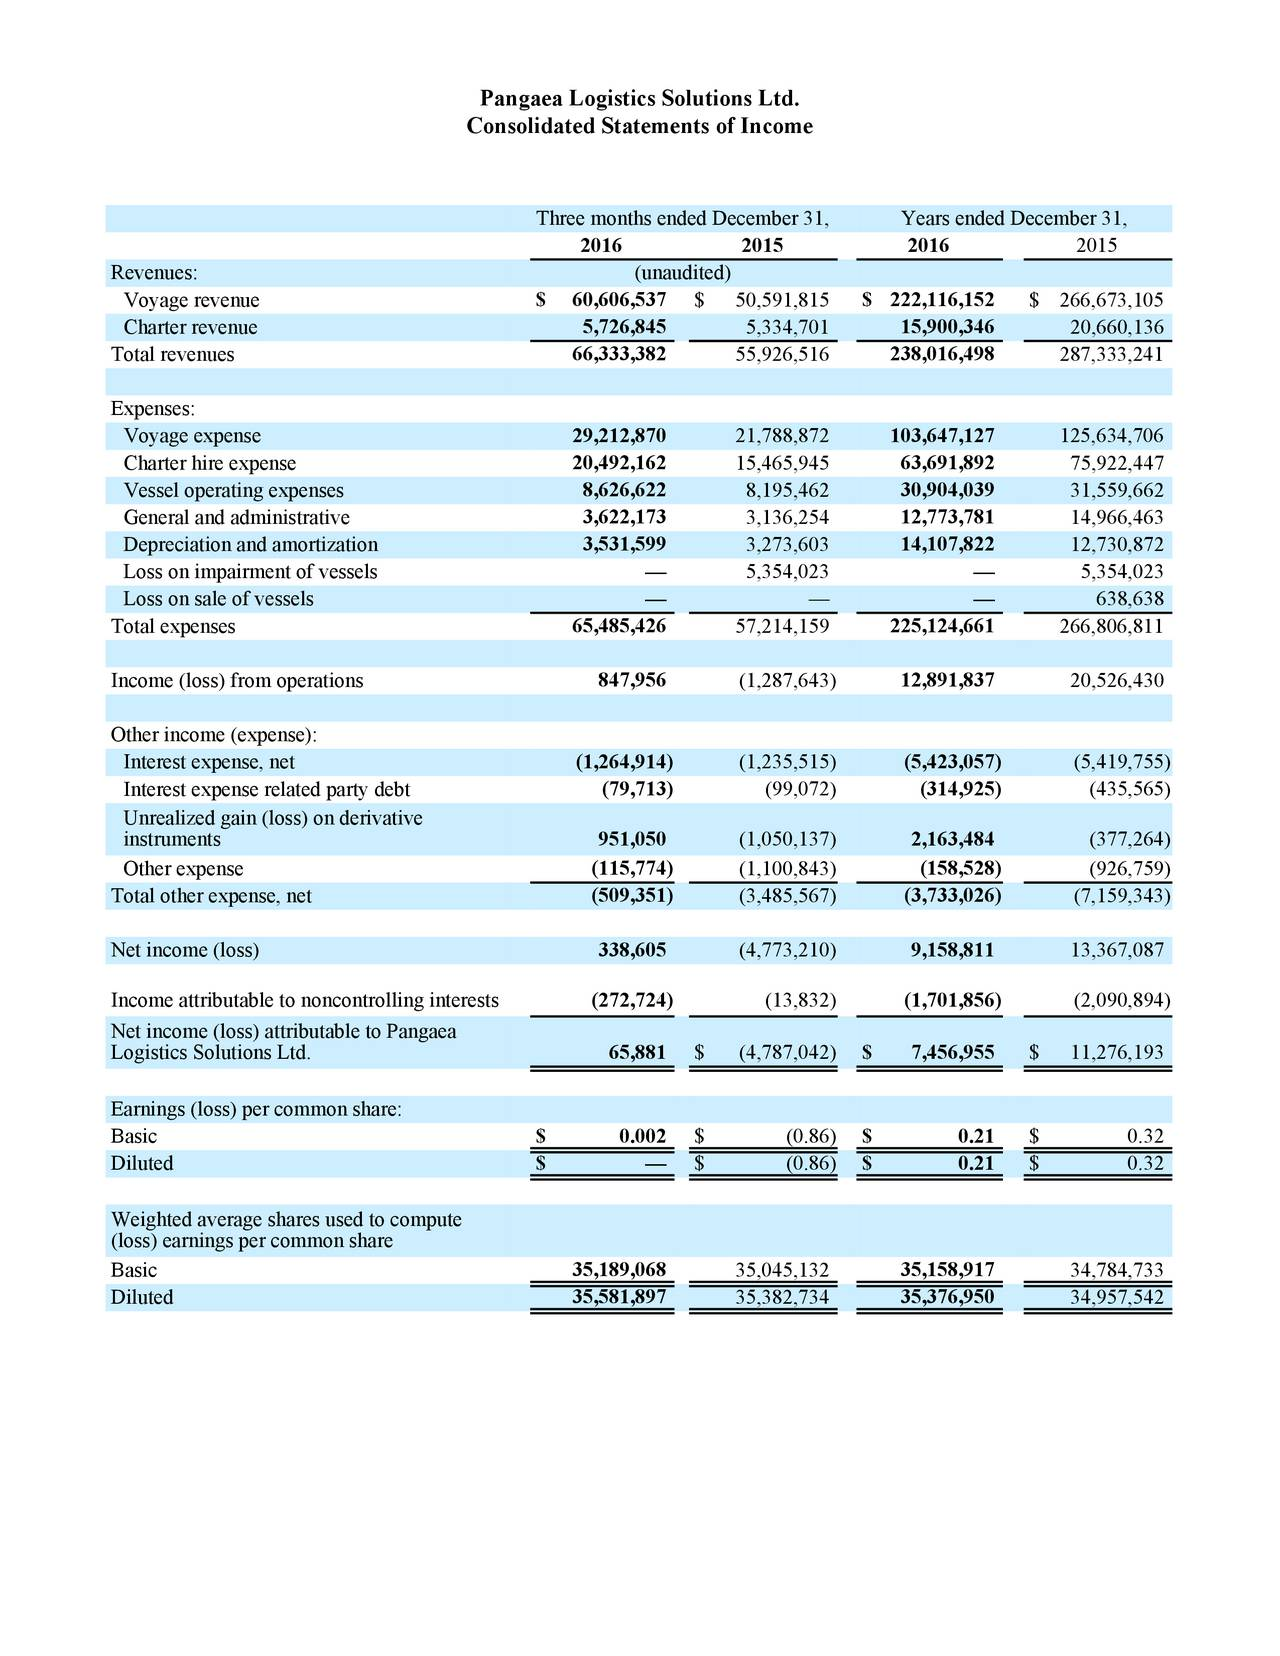 Consolidated Statements of Income Three months ended December 31, Years ended December 31, 2016 2015 2016 2015 Revenues: (unaudited) Voyage revenue $ 60,606,537 $ 50,591,815 $ 222,116,152 $ 266,673,105 Charter revenue 5,726,845 5,334,701 15,900,346 20,660,136 Total revenues 66,333,382 55,926,516 238,016,498 287,333,241 Expenses: Voyage expense 29,212,870 21,788,872 103,647,127 125,634,706 Charter hire expense 20,492,162 15,465,945 63,691,892 75,922,447 Vessel operating expenses 8,626,622 8,195,462 30,904,039 31,559,662 General and administrative 3,622,173 3,136,254 12,773,781 14,966,463 Depreciation and amortization 3,531,599 3,273,603 14,107,822 12,730,872 Loss on impairment of vessels  5,354,023  5,354,023 Loss on sale of vessels    638,638 Total expenses 65,485,426 57,214,159 225,124,661 266,806,811 Income (loss) from operations 847,956 (1,287,643) 12,891,837 20,526,430 Other income (expense): Interest expense, net (1,264,914) (1,235,515) (5,423,057) (5,419,755) Interest expense related party debt (79,713 ) (99,072) (314,925) (435,565) Unrealized gain (loss) on derivative instruments 951,050 (1,050,137) 2,163,484 (377,264) Other expense (115,774 ) (1,100,843) (158,528) (926,759) Total other expense, net (509,351 ) (3,485,567) (3,733,026) (7,159,343) Net income (loss) 338,605 (4,773,210) 9,158,811 13,367,087 Income attributable to noncontrolling interests (272,724 ) (13,832) (1,701,856) (2,090,894) Net income (loss) attributable to Pangaea Logistics Solutions Ltd. 65,881 $ (4,787,042) $ 7,456,955 $ 11,276,193 Earnings (loss) per common share: $ 0.002 $ 0.21 Basic $ (0.86) $ 0.32 Diluted $  $ (0.86) $ 0.21 $ 0.32 Weighted average shares used to compute (loss) earnings per common share Basic 35,189,068 35,045,132 35,158,917 34,784,733 Diluted 35,581,897 35,382,734 35,376,950 34,957,542